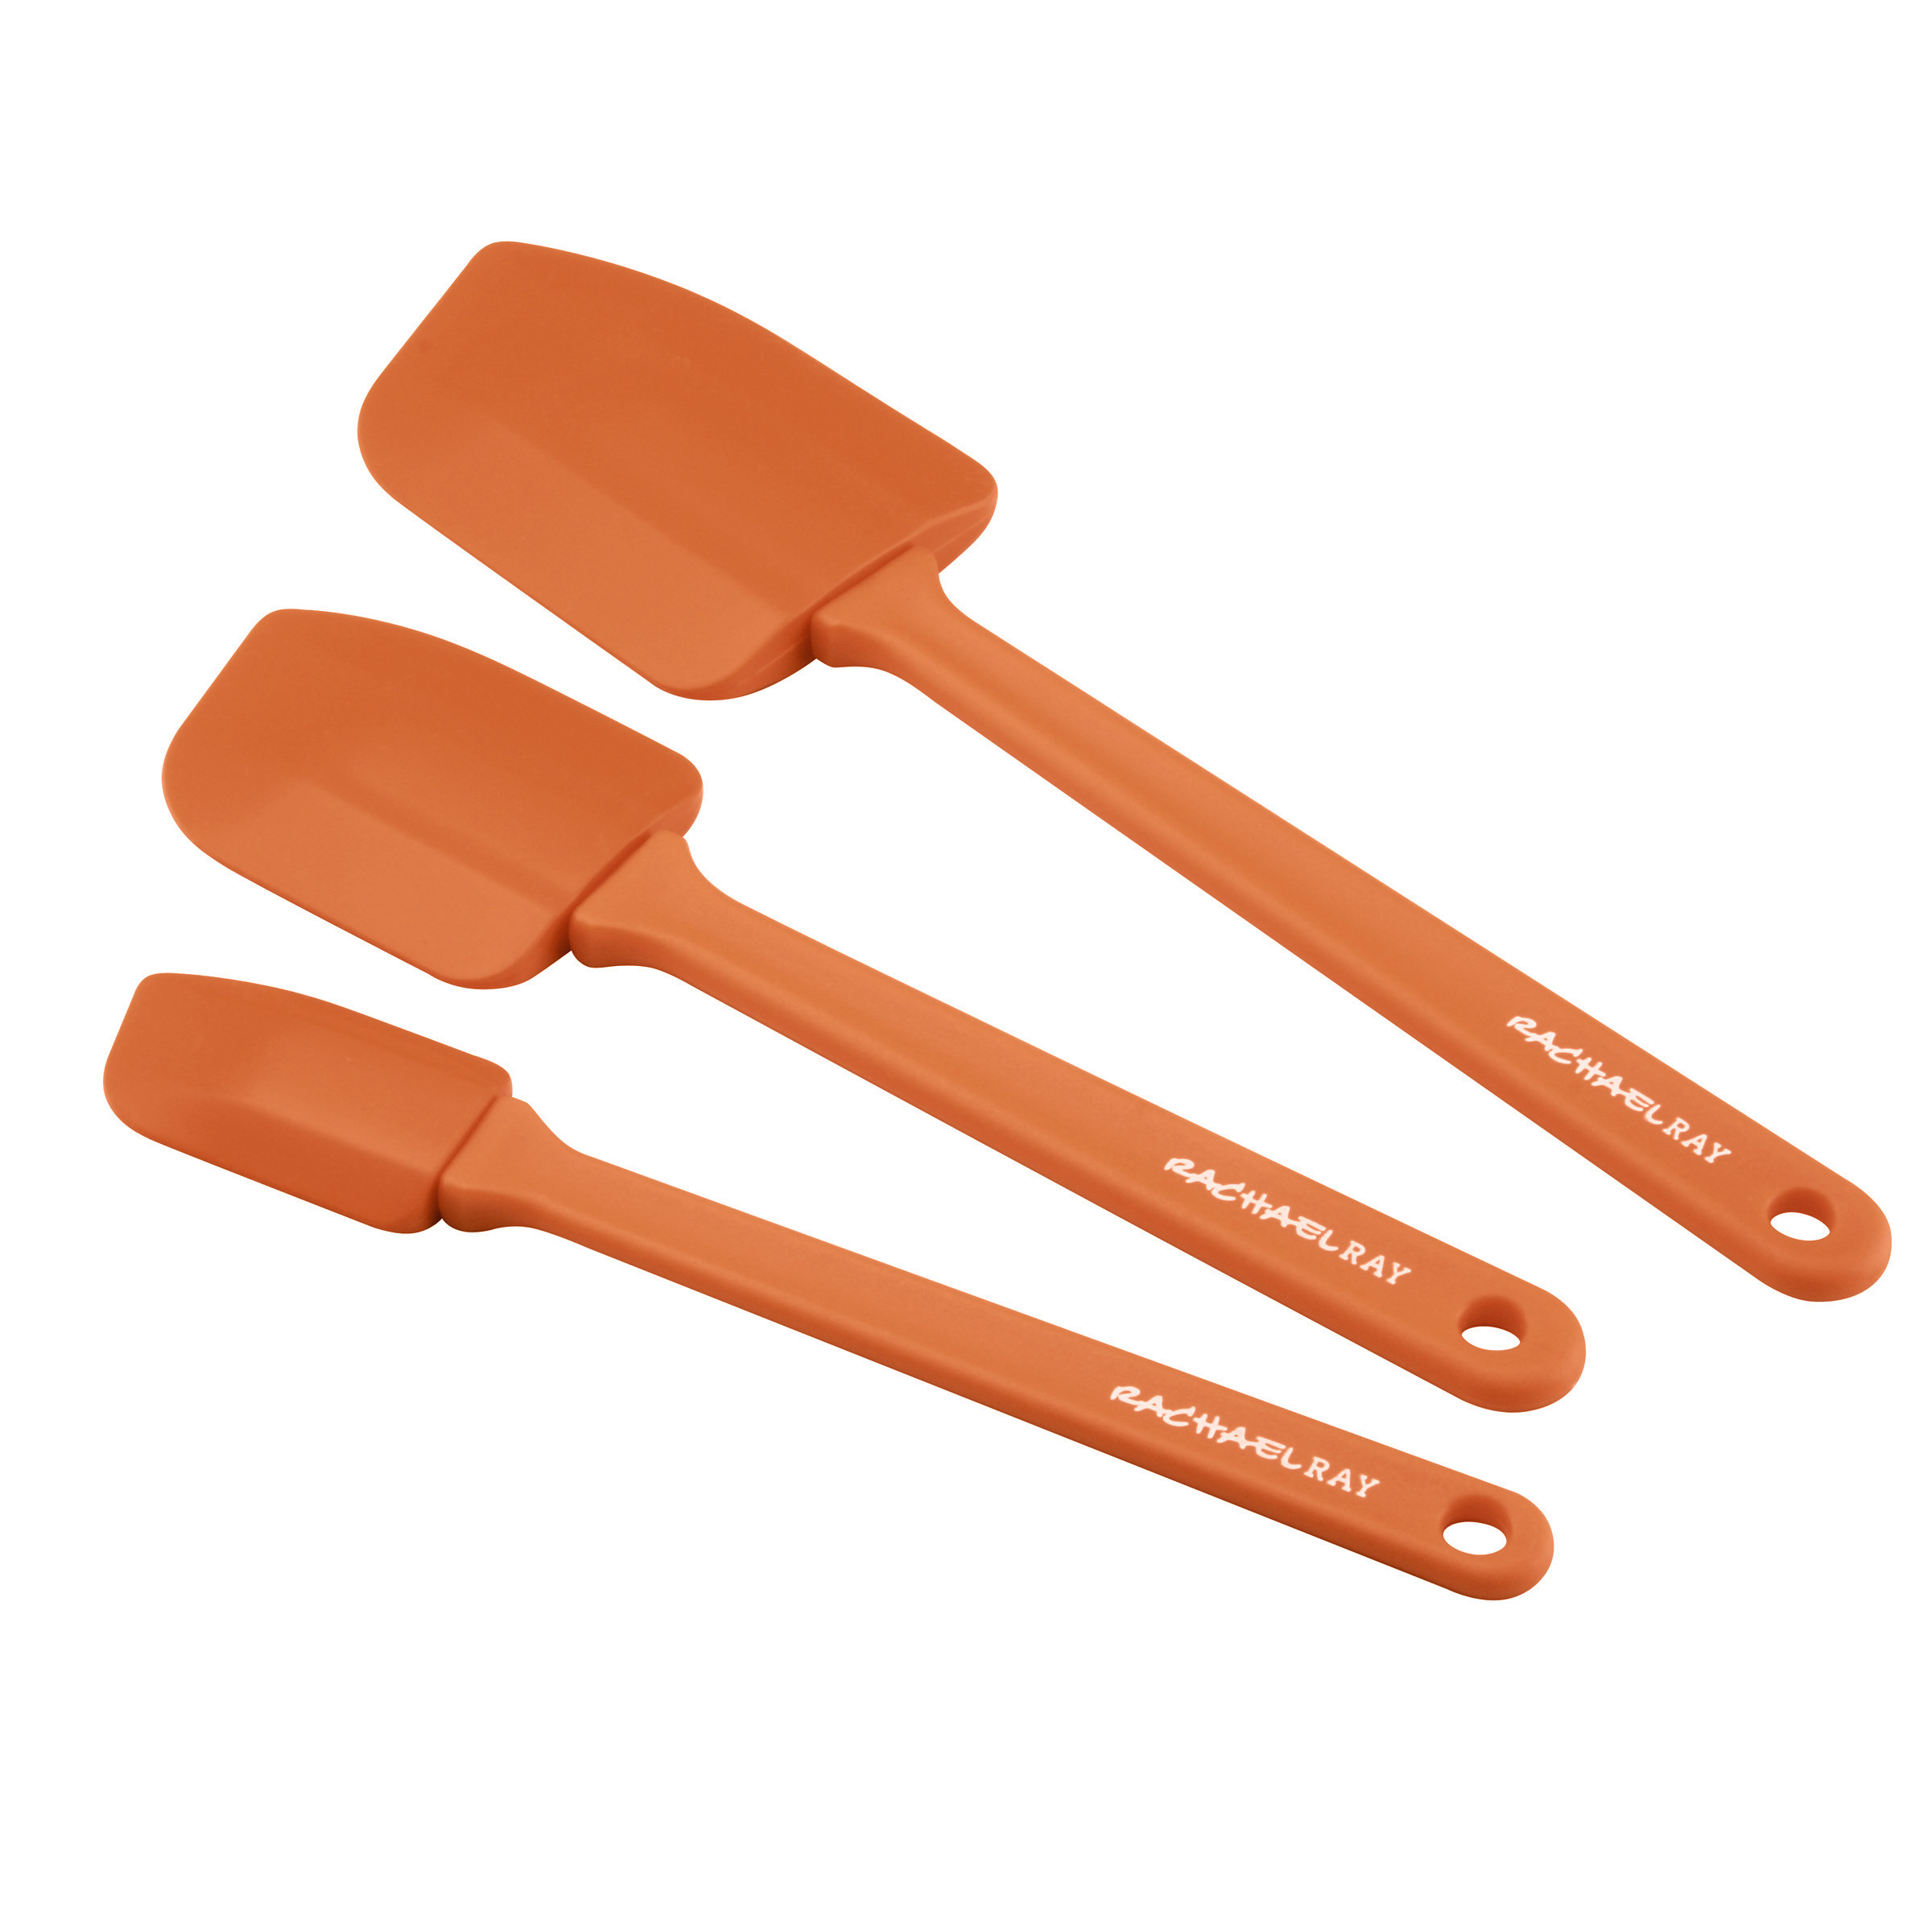 Rachael Ray Tools & Gadgets Lil' Devils 3-Piece Silicone Spoonula Set, Orange